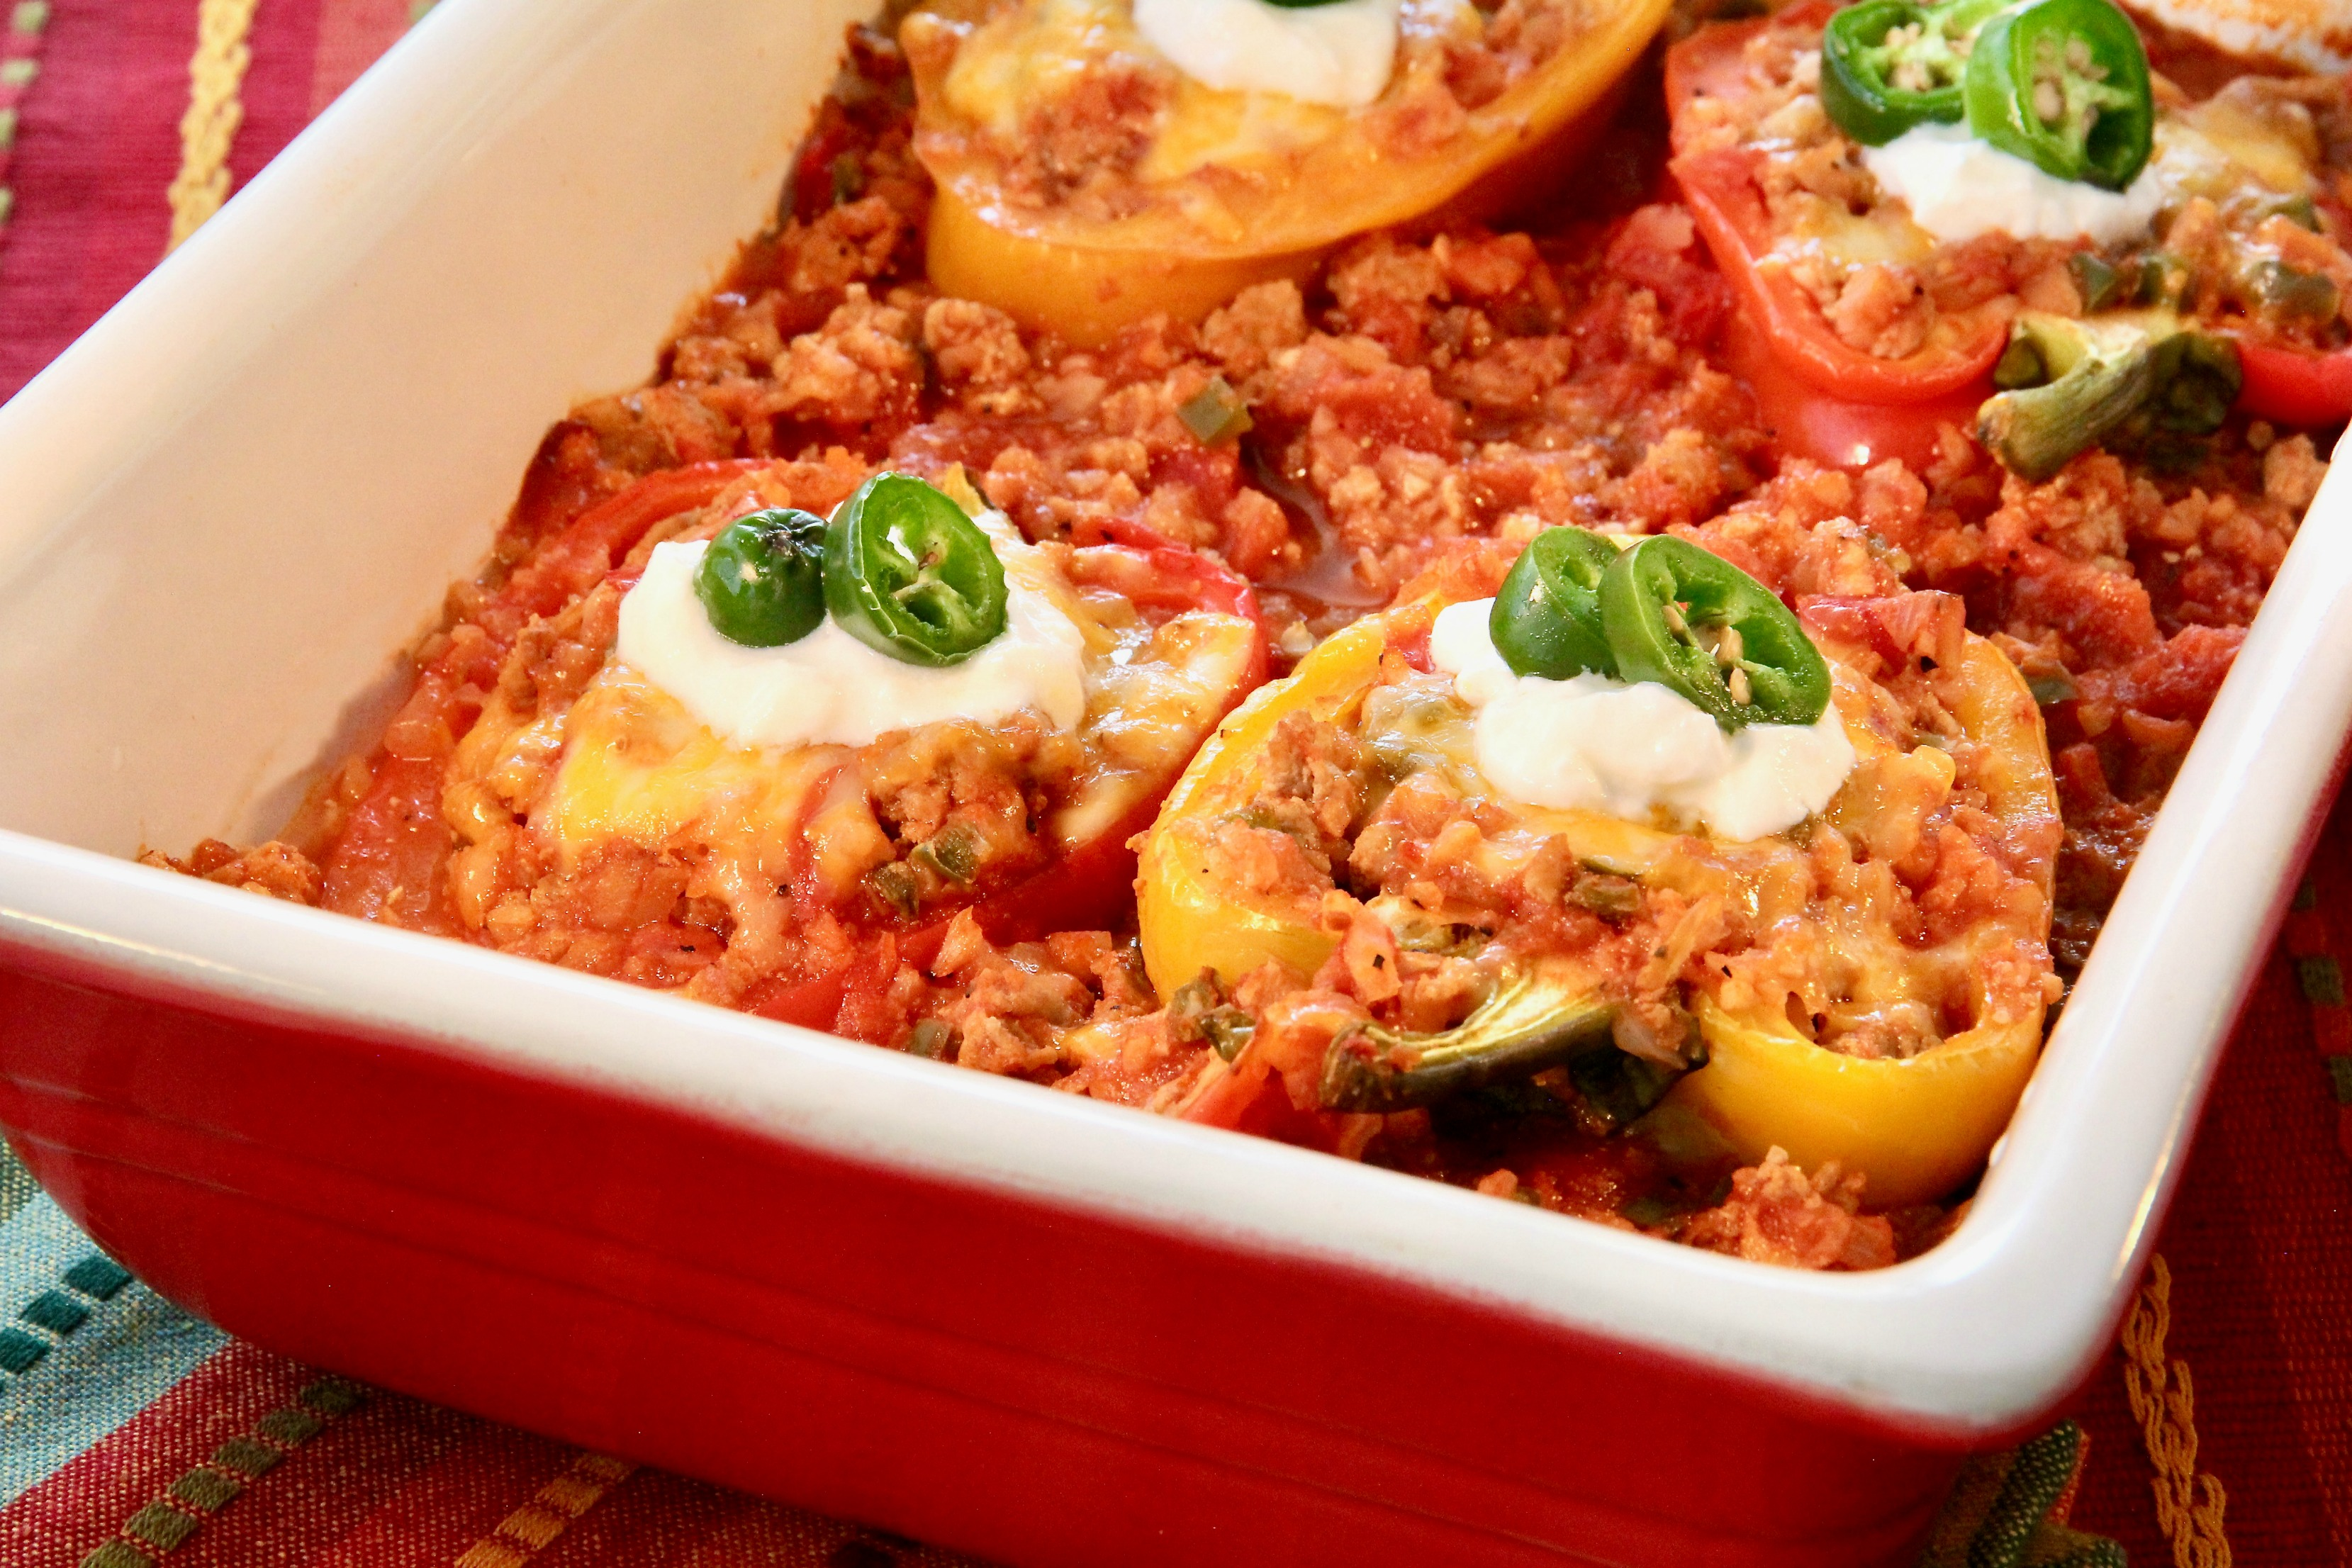 Low Carb Turkey-Stuffed Peppers